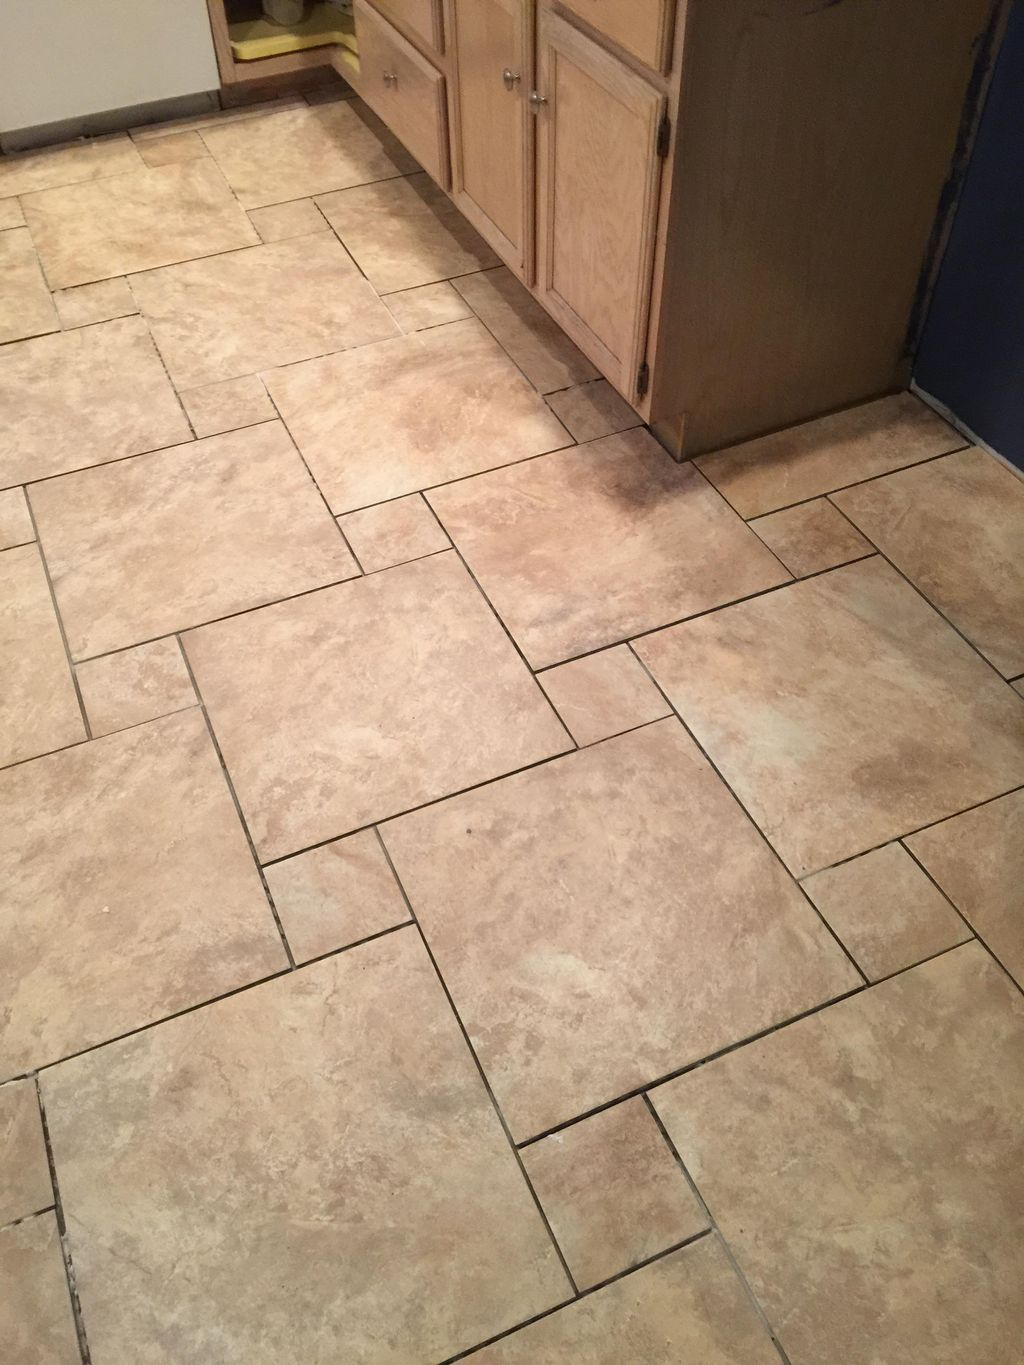 Roche Tile and Flooring